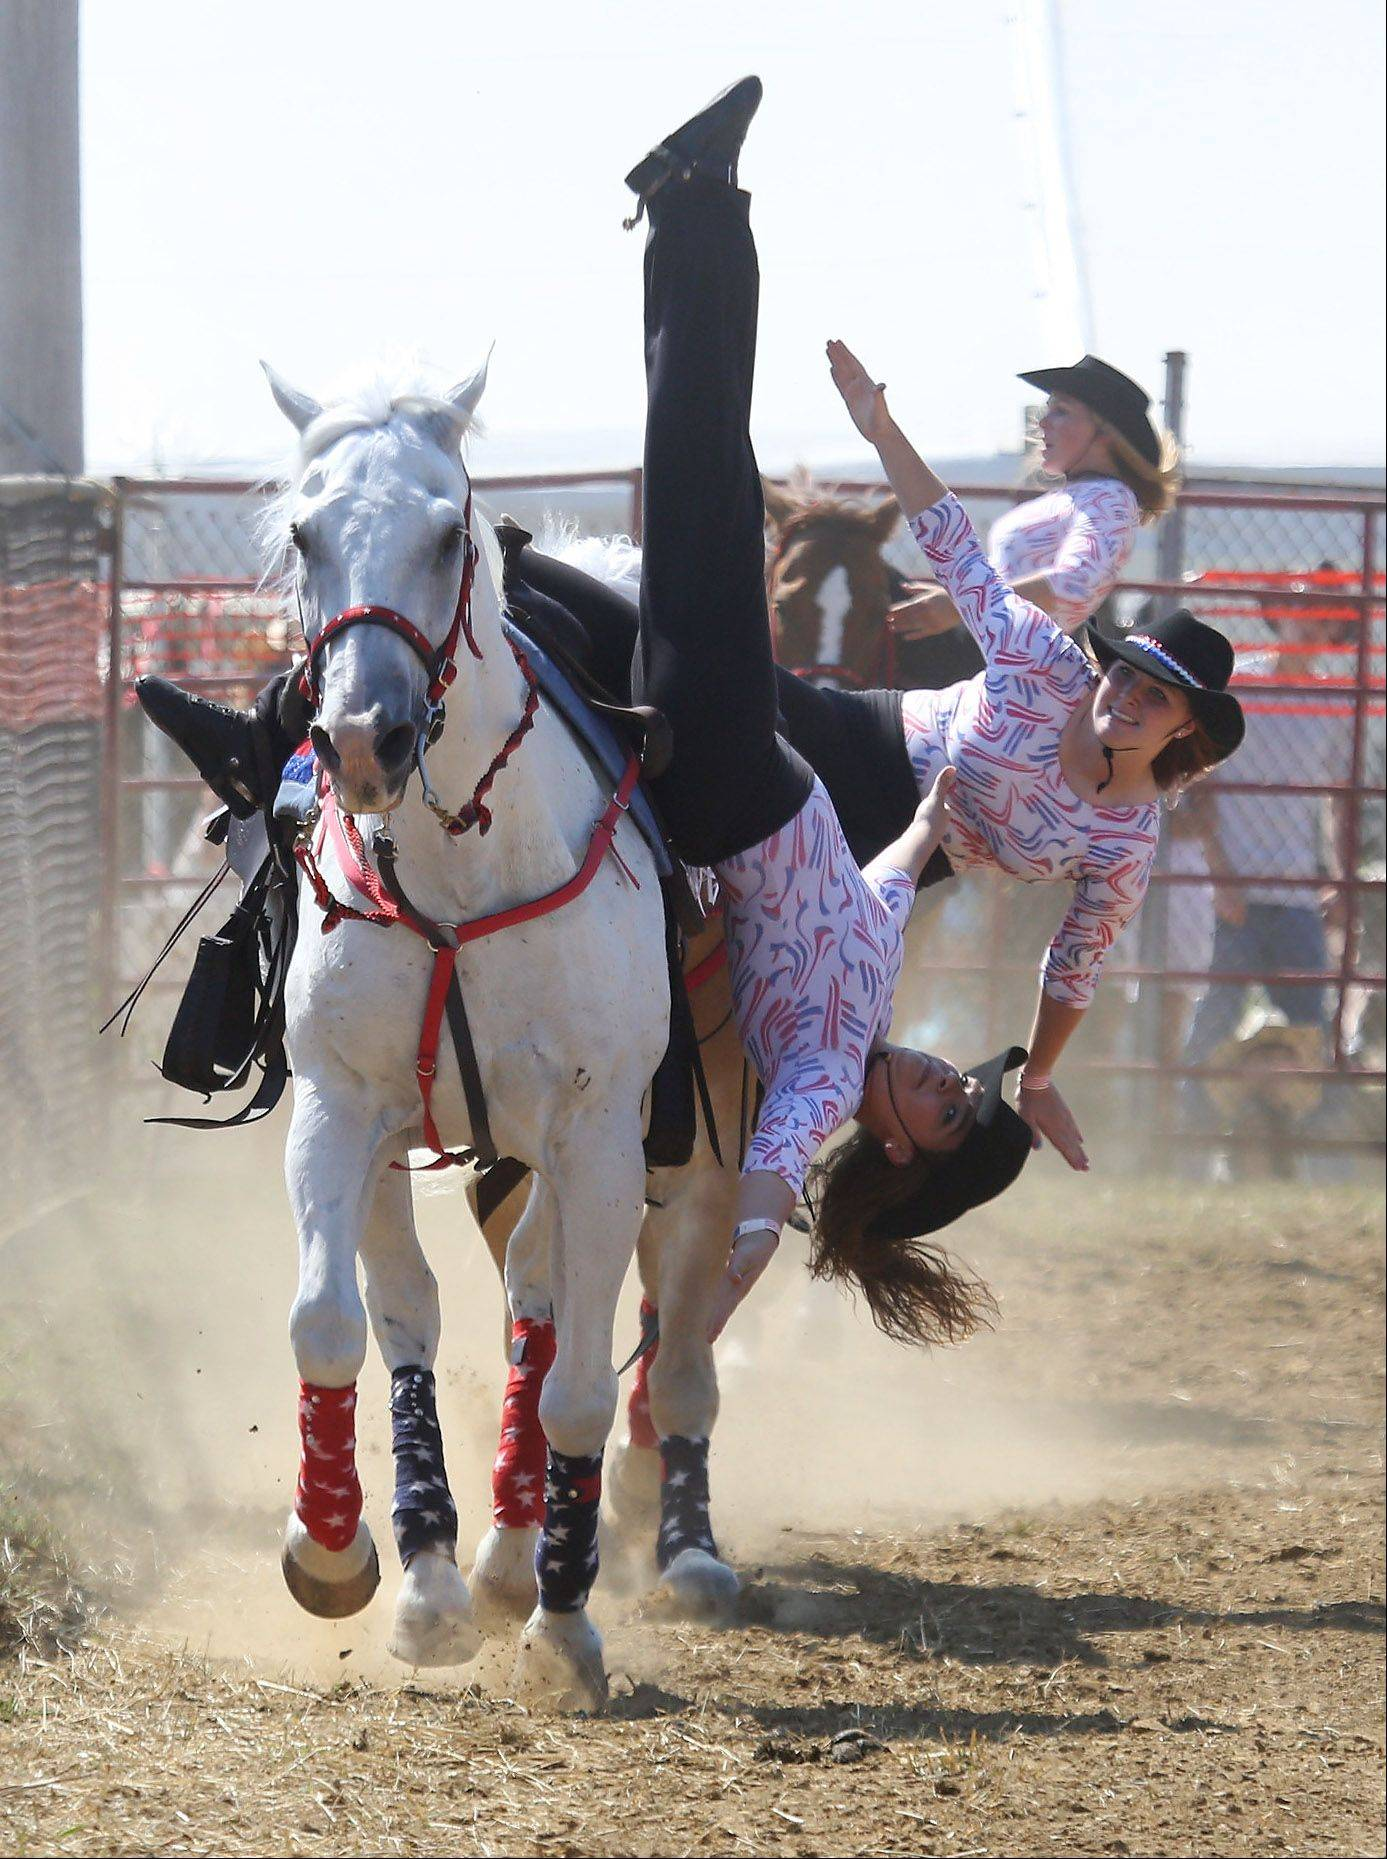 The drill team performs during the 50th Annual IPRA Championship Wauconda Rodeo Sunday at Green Oaks Rodeo Grounds. The Wauconda Area Chamber of Commerce sponsored the event that featured a mechanical bull, pony rides and calf roping as well as the rodeo show.